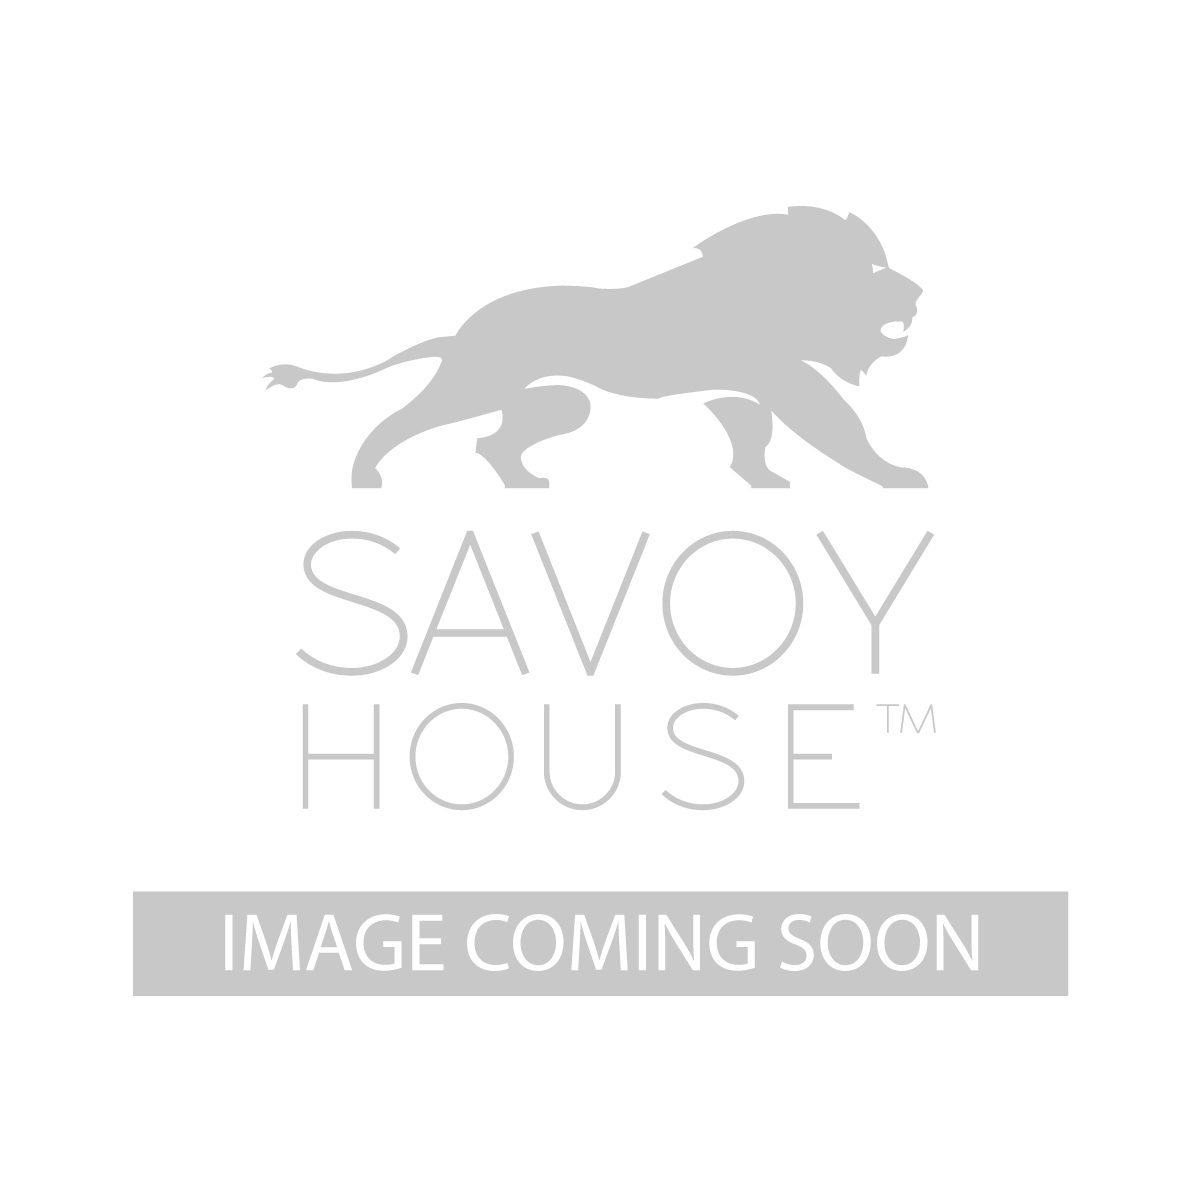 7 5375 1 13 vintage pendants by savoy house for Savoy house com